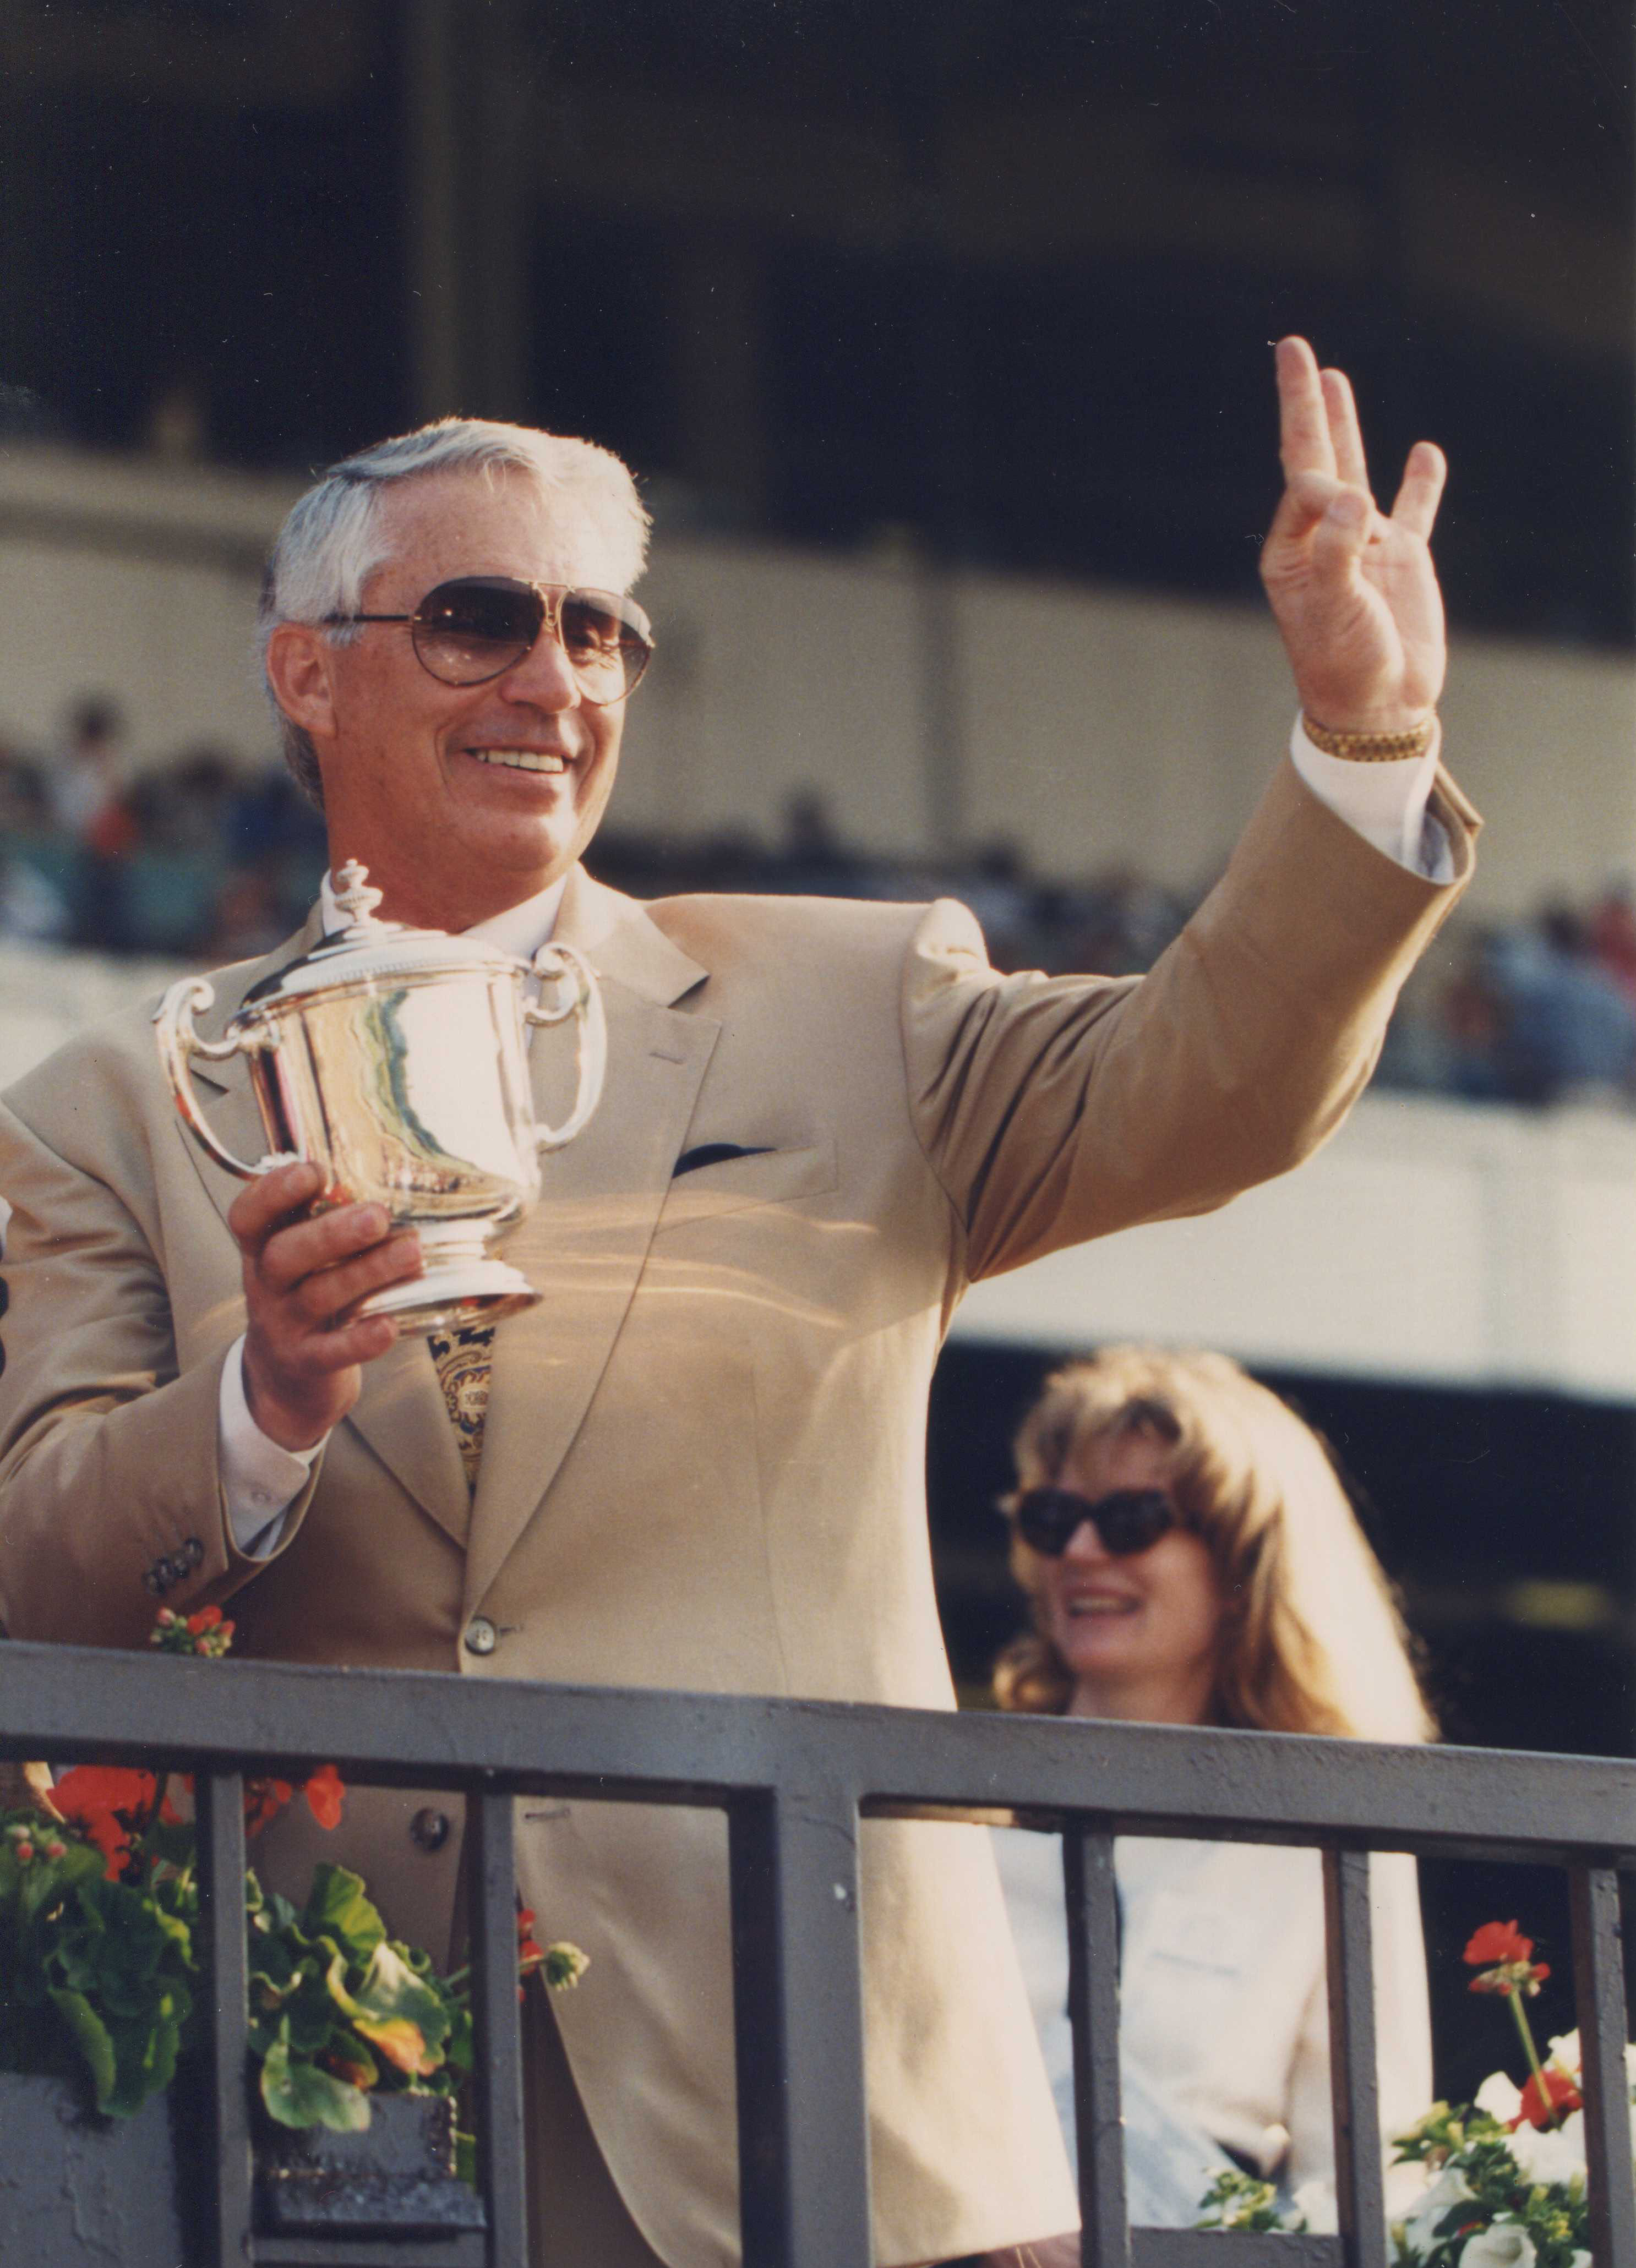 D. Wayne Lukas in the winner's circle at Belmont Park, June 1996 (Barbara D. Livingston/Museum Collection)